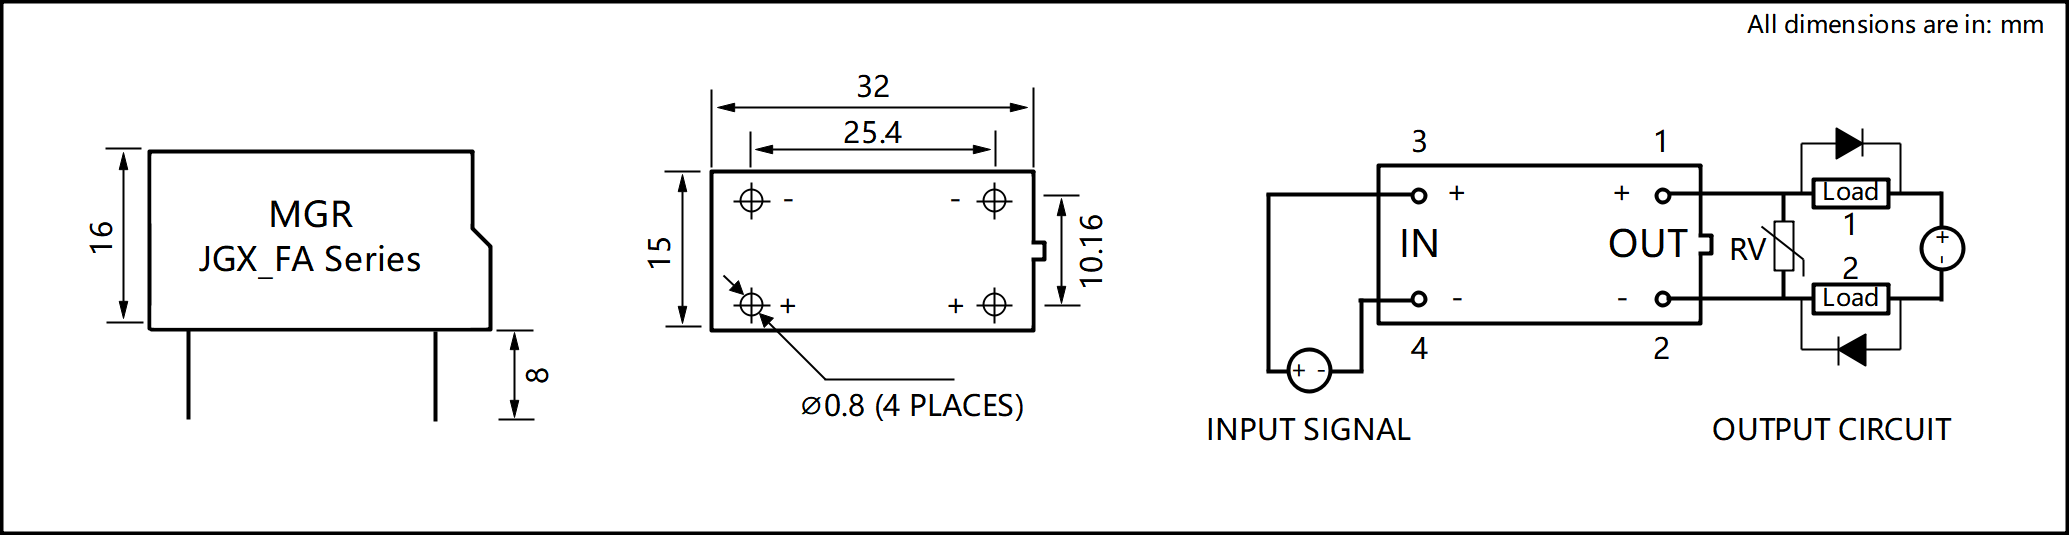 JGX_FA Series Plastic Housing PCB Mount Solid State Relay Circuit Wring Diagram